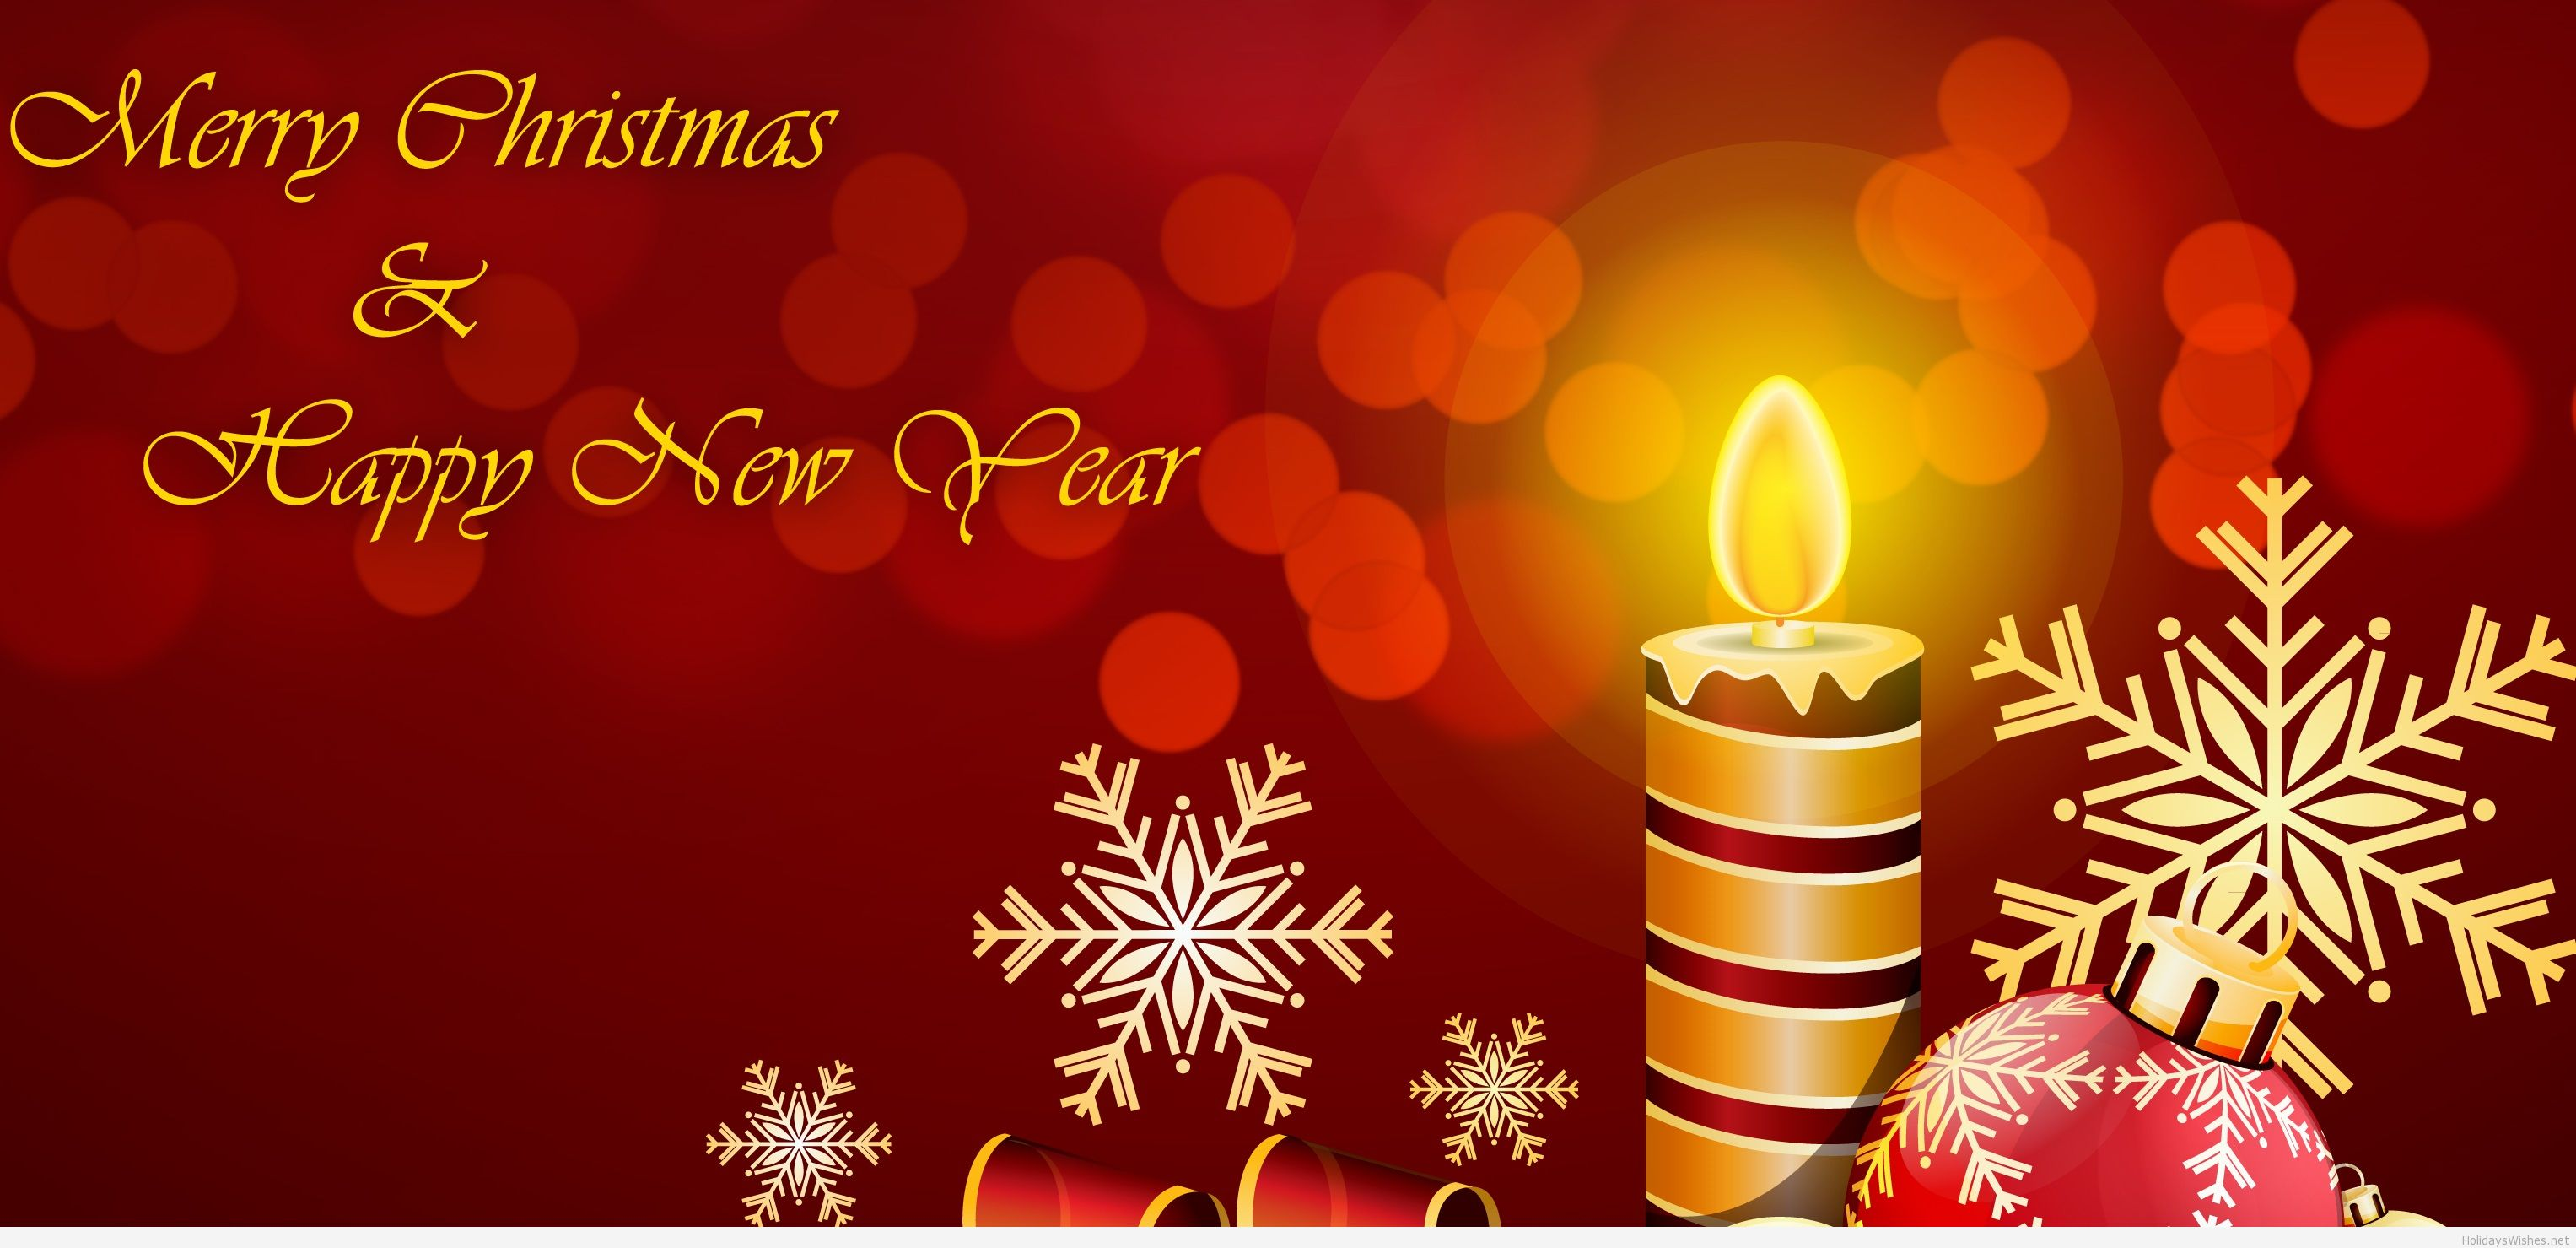 Merry christmas and happy new year greeting card with snowflakes on merry christmas happy new year greetings 12 2 m4hsunfo